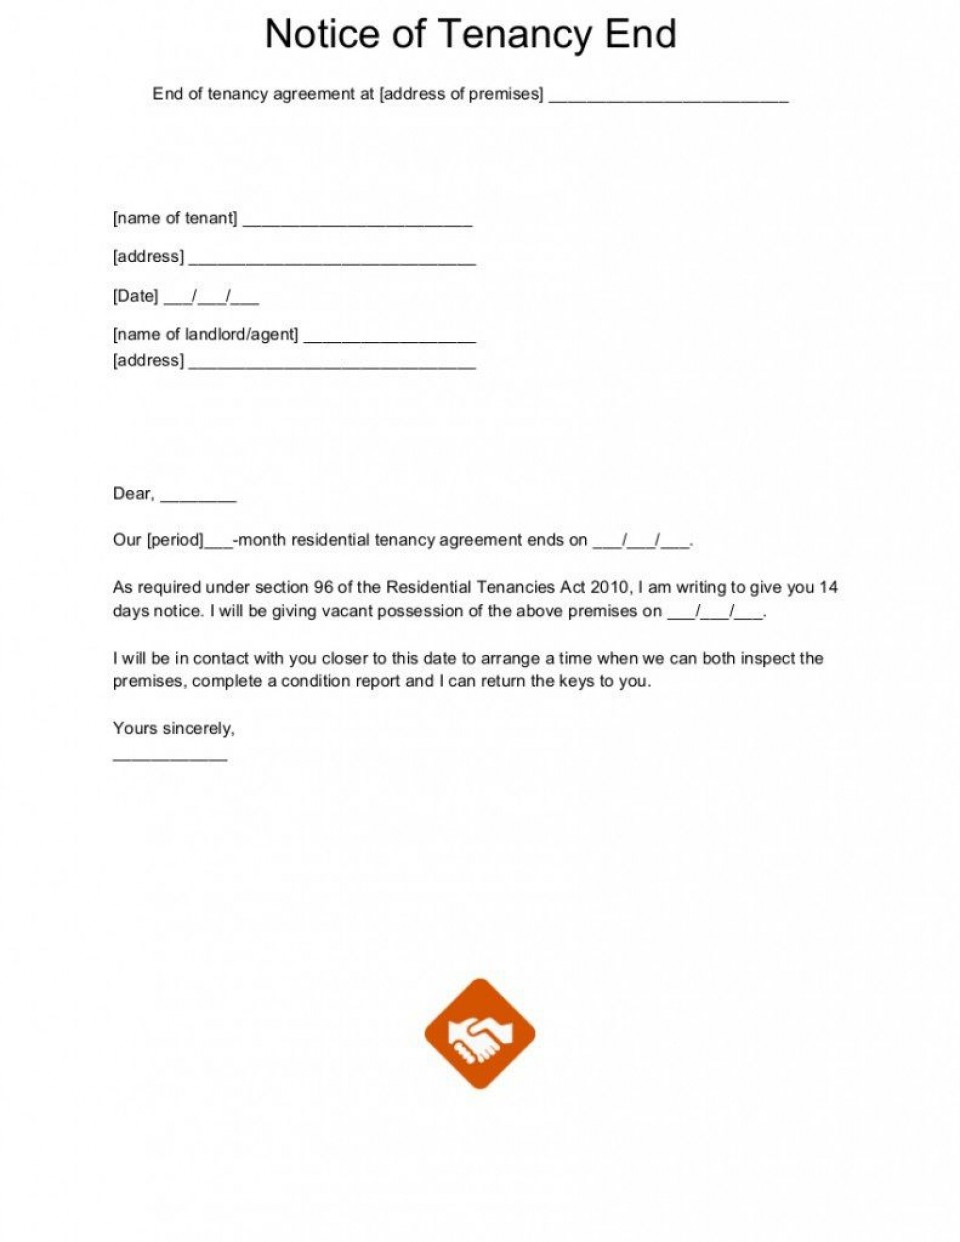 003 Wonderful Template For Terminating A Lease Agreement High Definition  Rental Sample Letter960